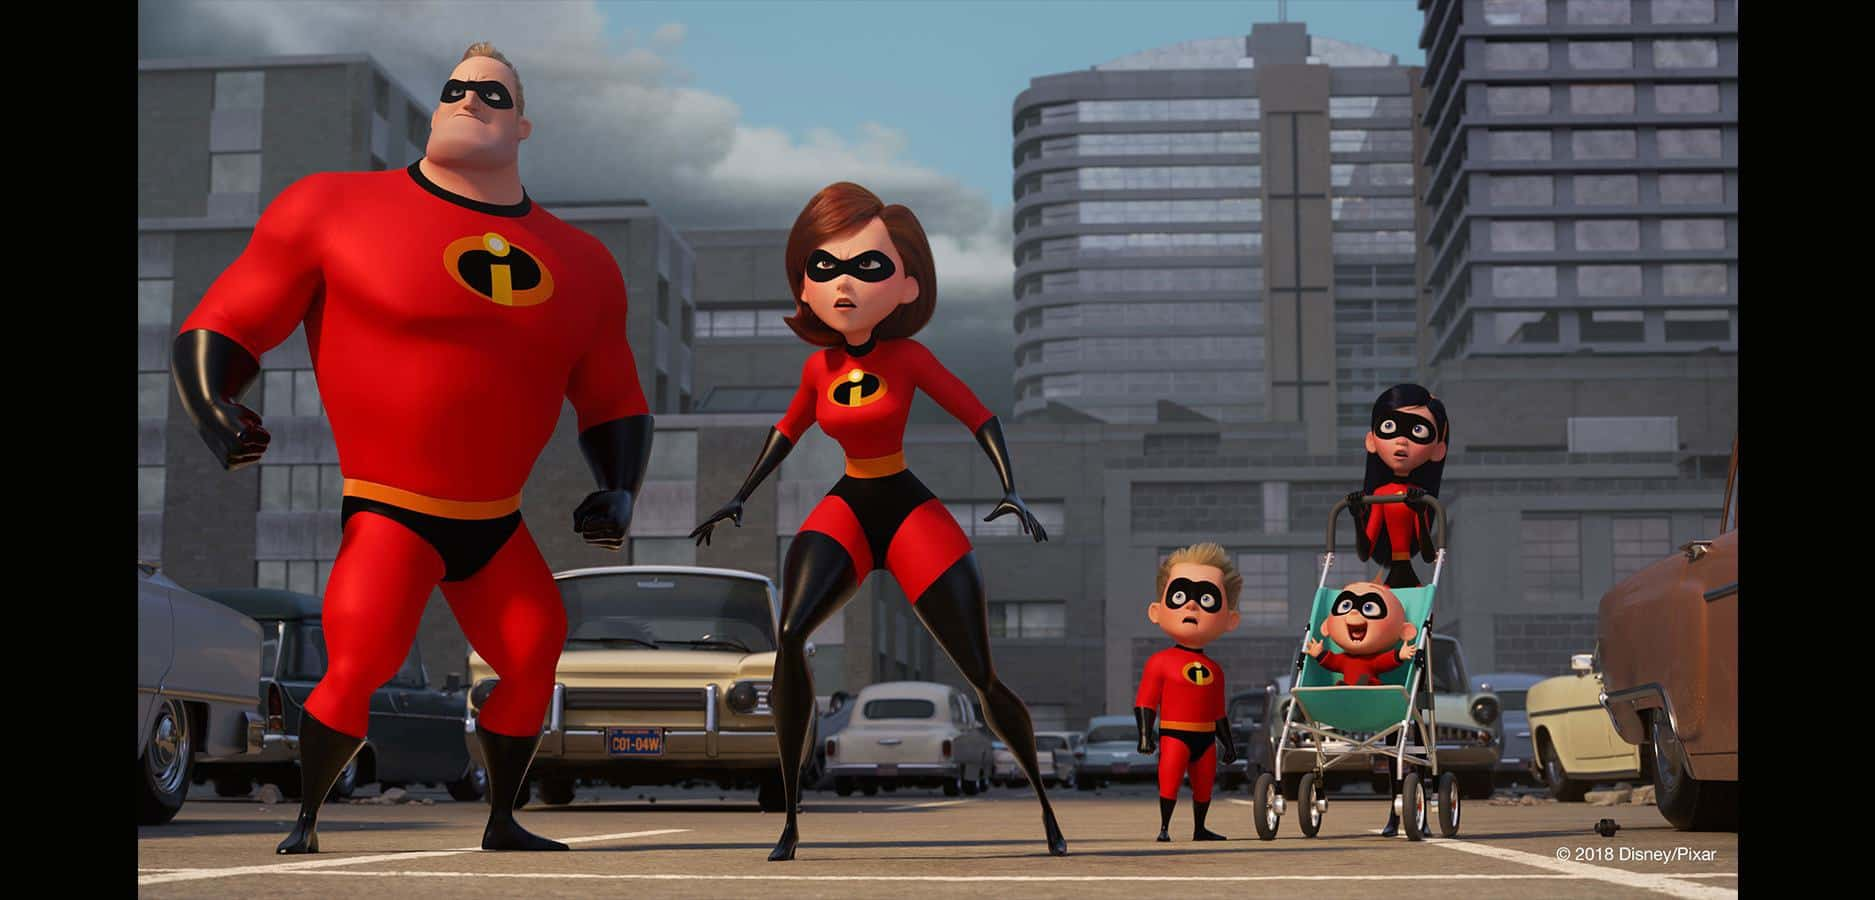 Disney & Pixar's Incredibles 2 Trivia Questions and Answers